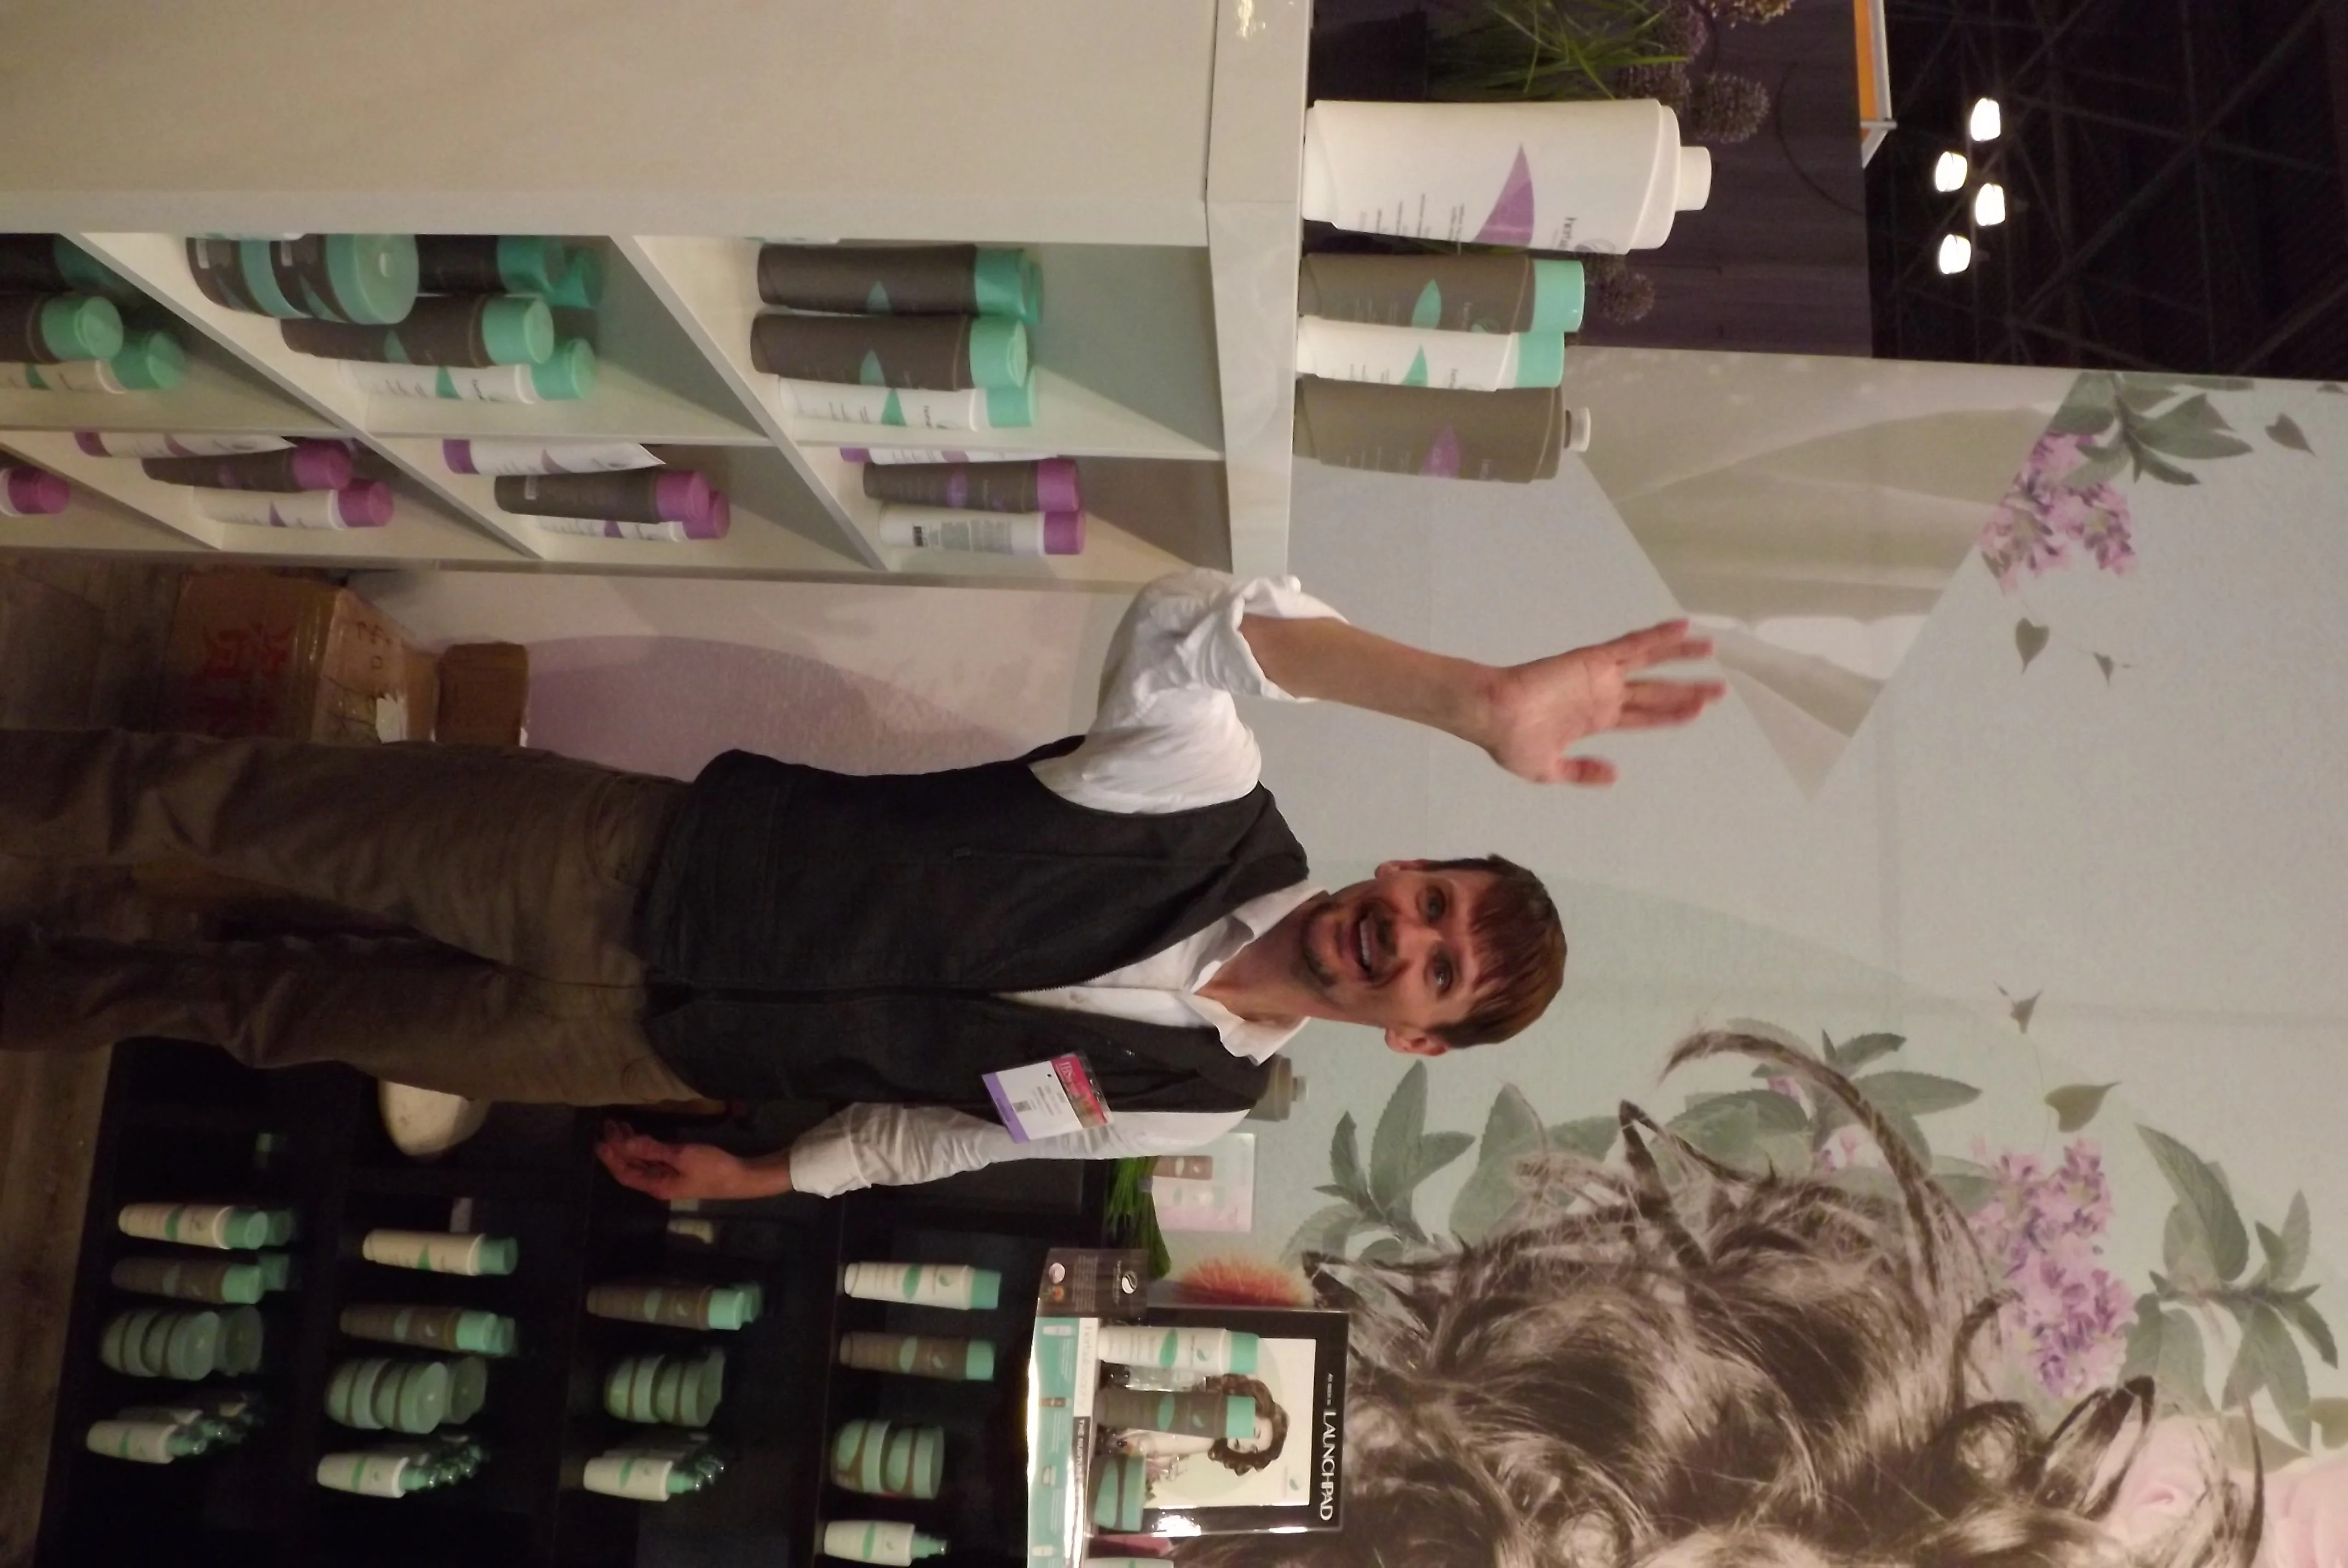 Salon Ibs Herbalosophy Treats Lucky Salon Owner To Ibs New York